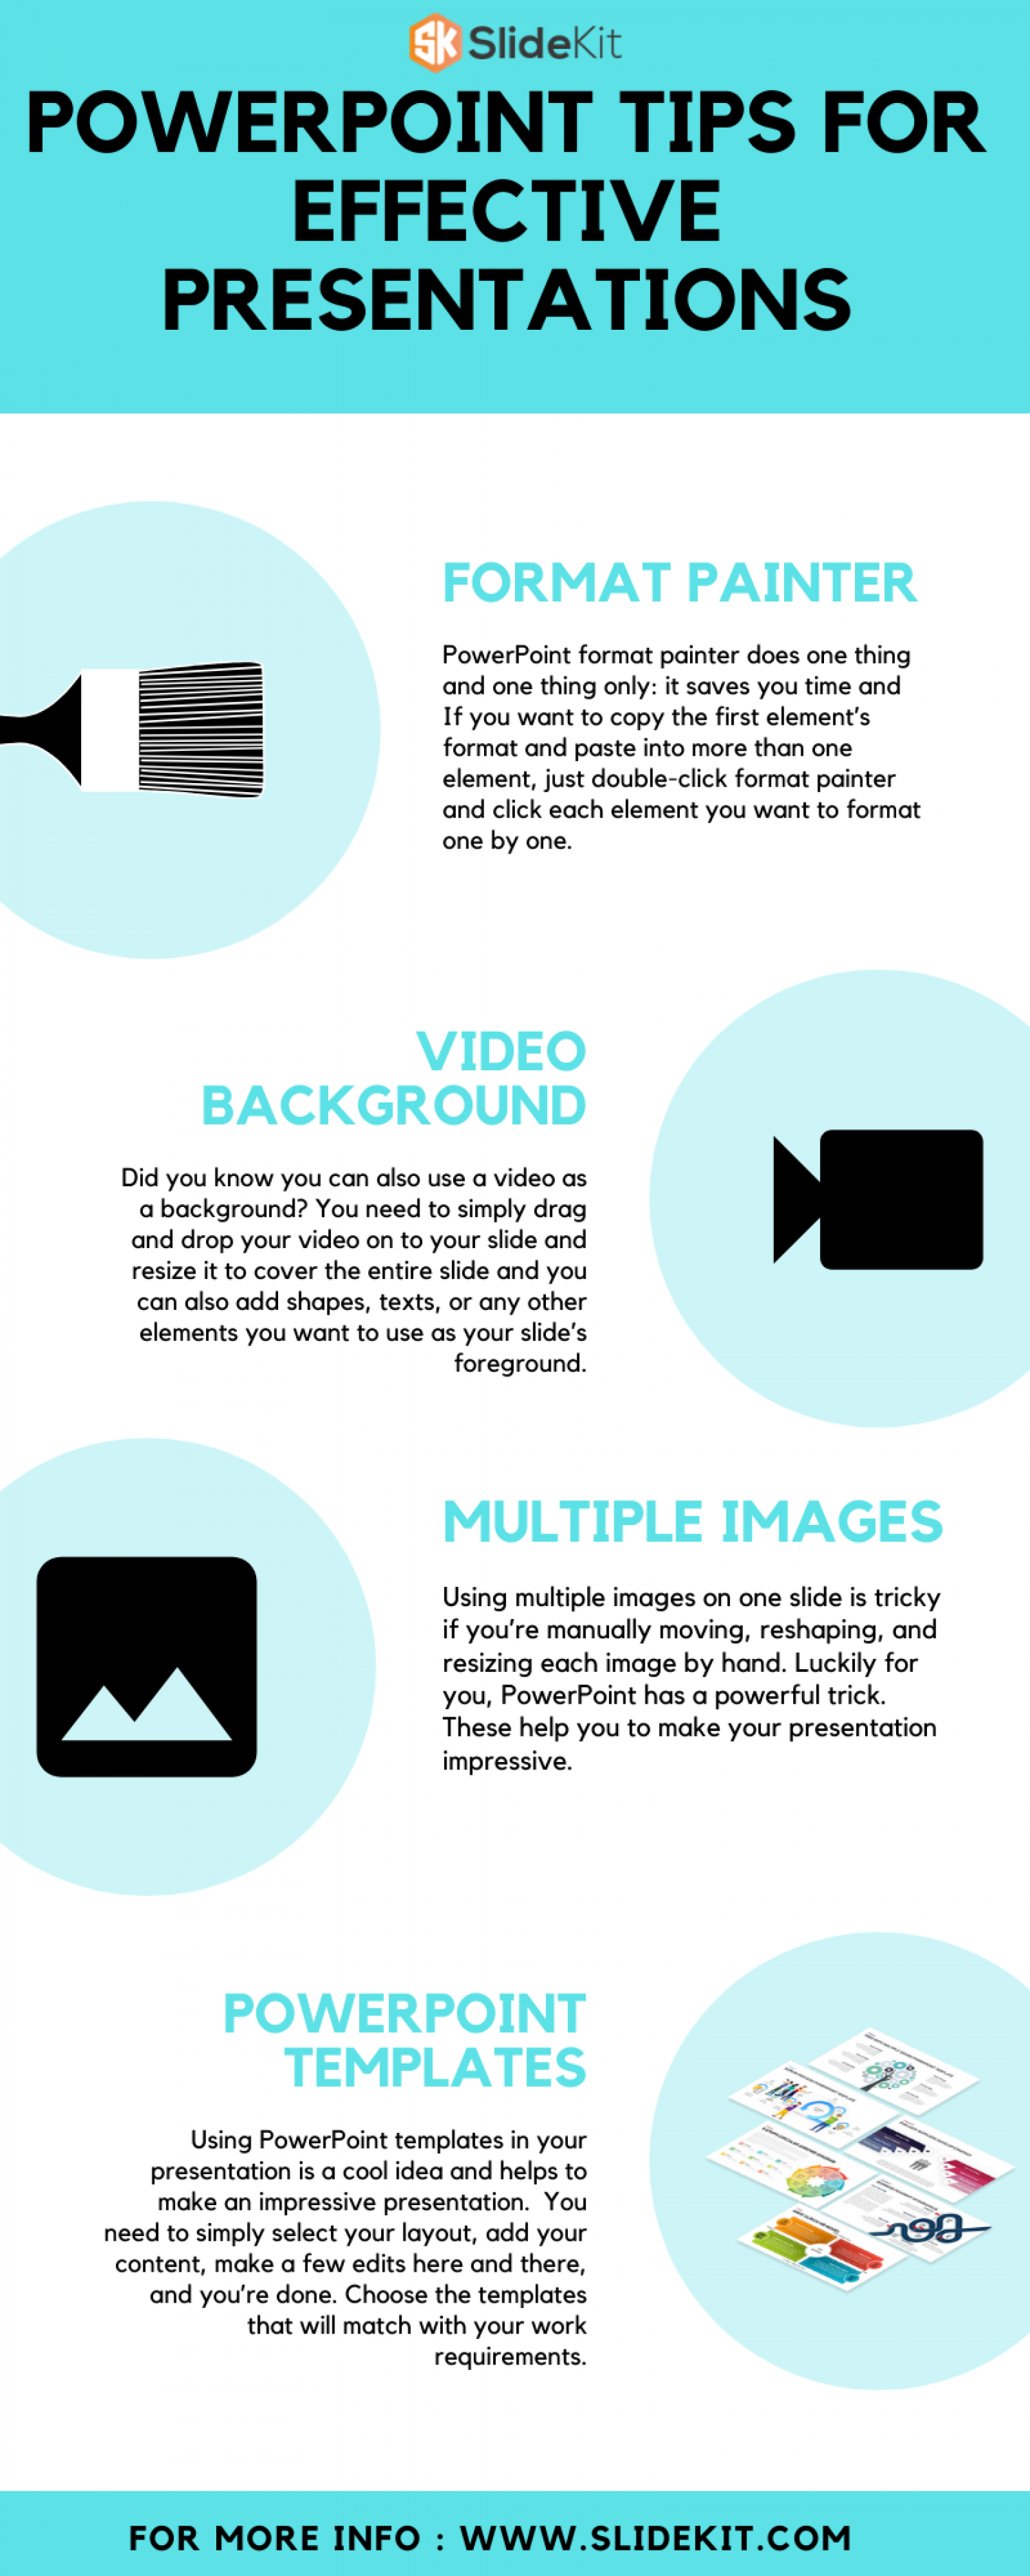 PowerPoint Tips For effective Presentations Infographic